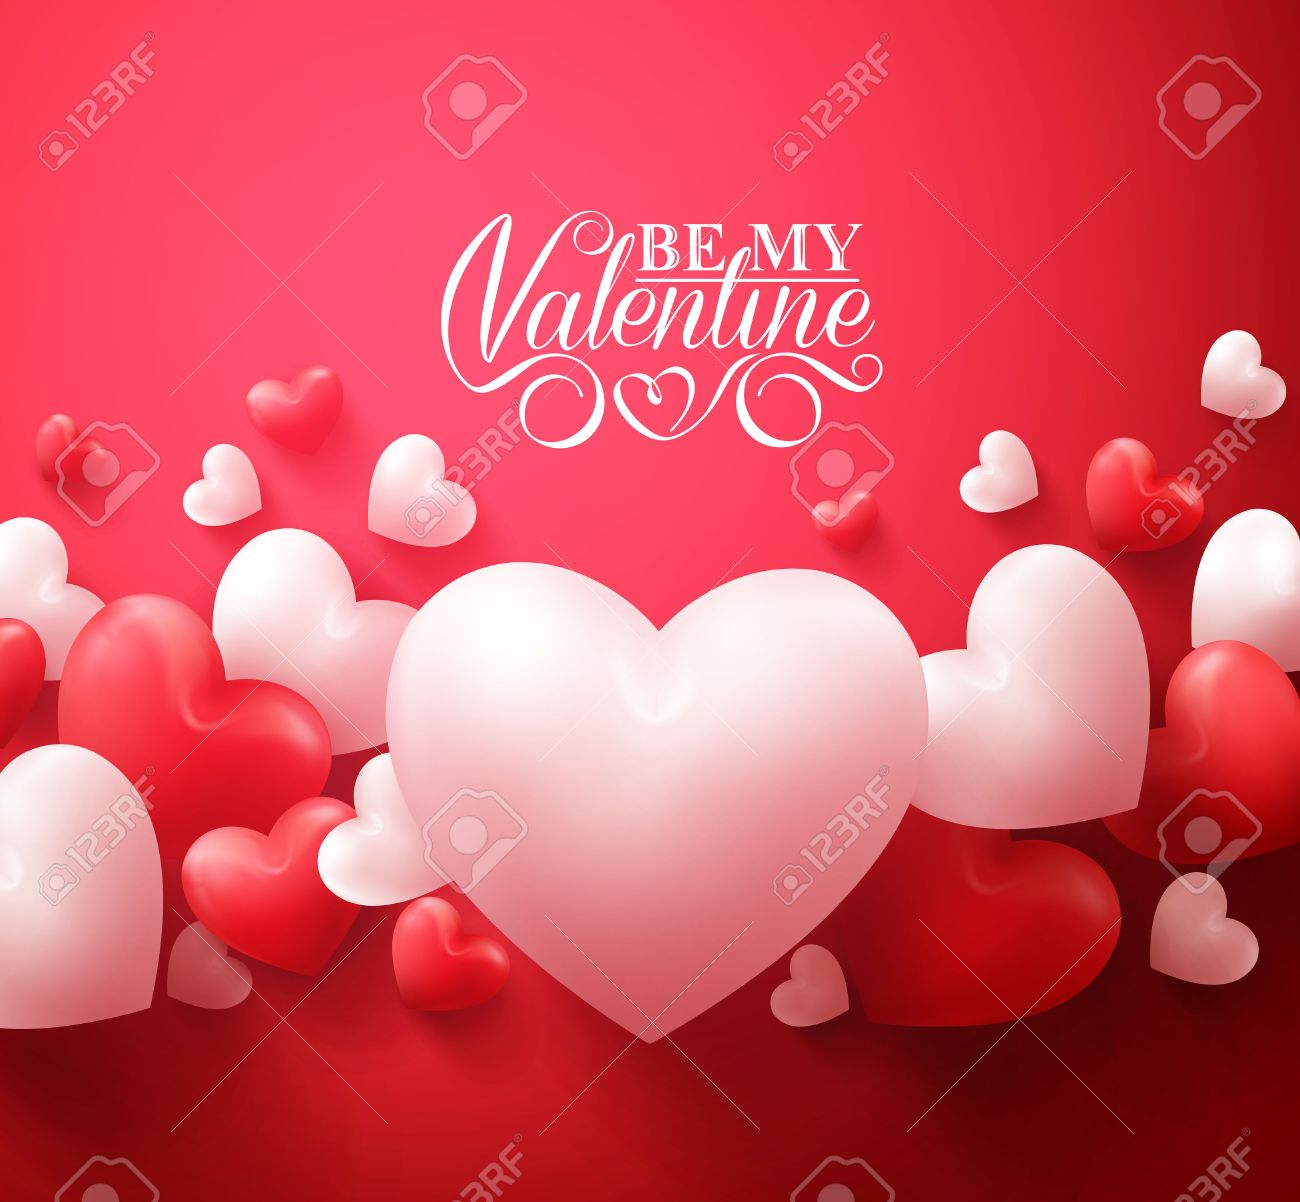 Realistic 3D Colorful Red and White Romantic Valentine Hearts Background Floating with Happy Valentines Day Greetings. Illustration - 50500136